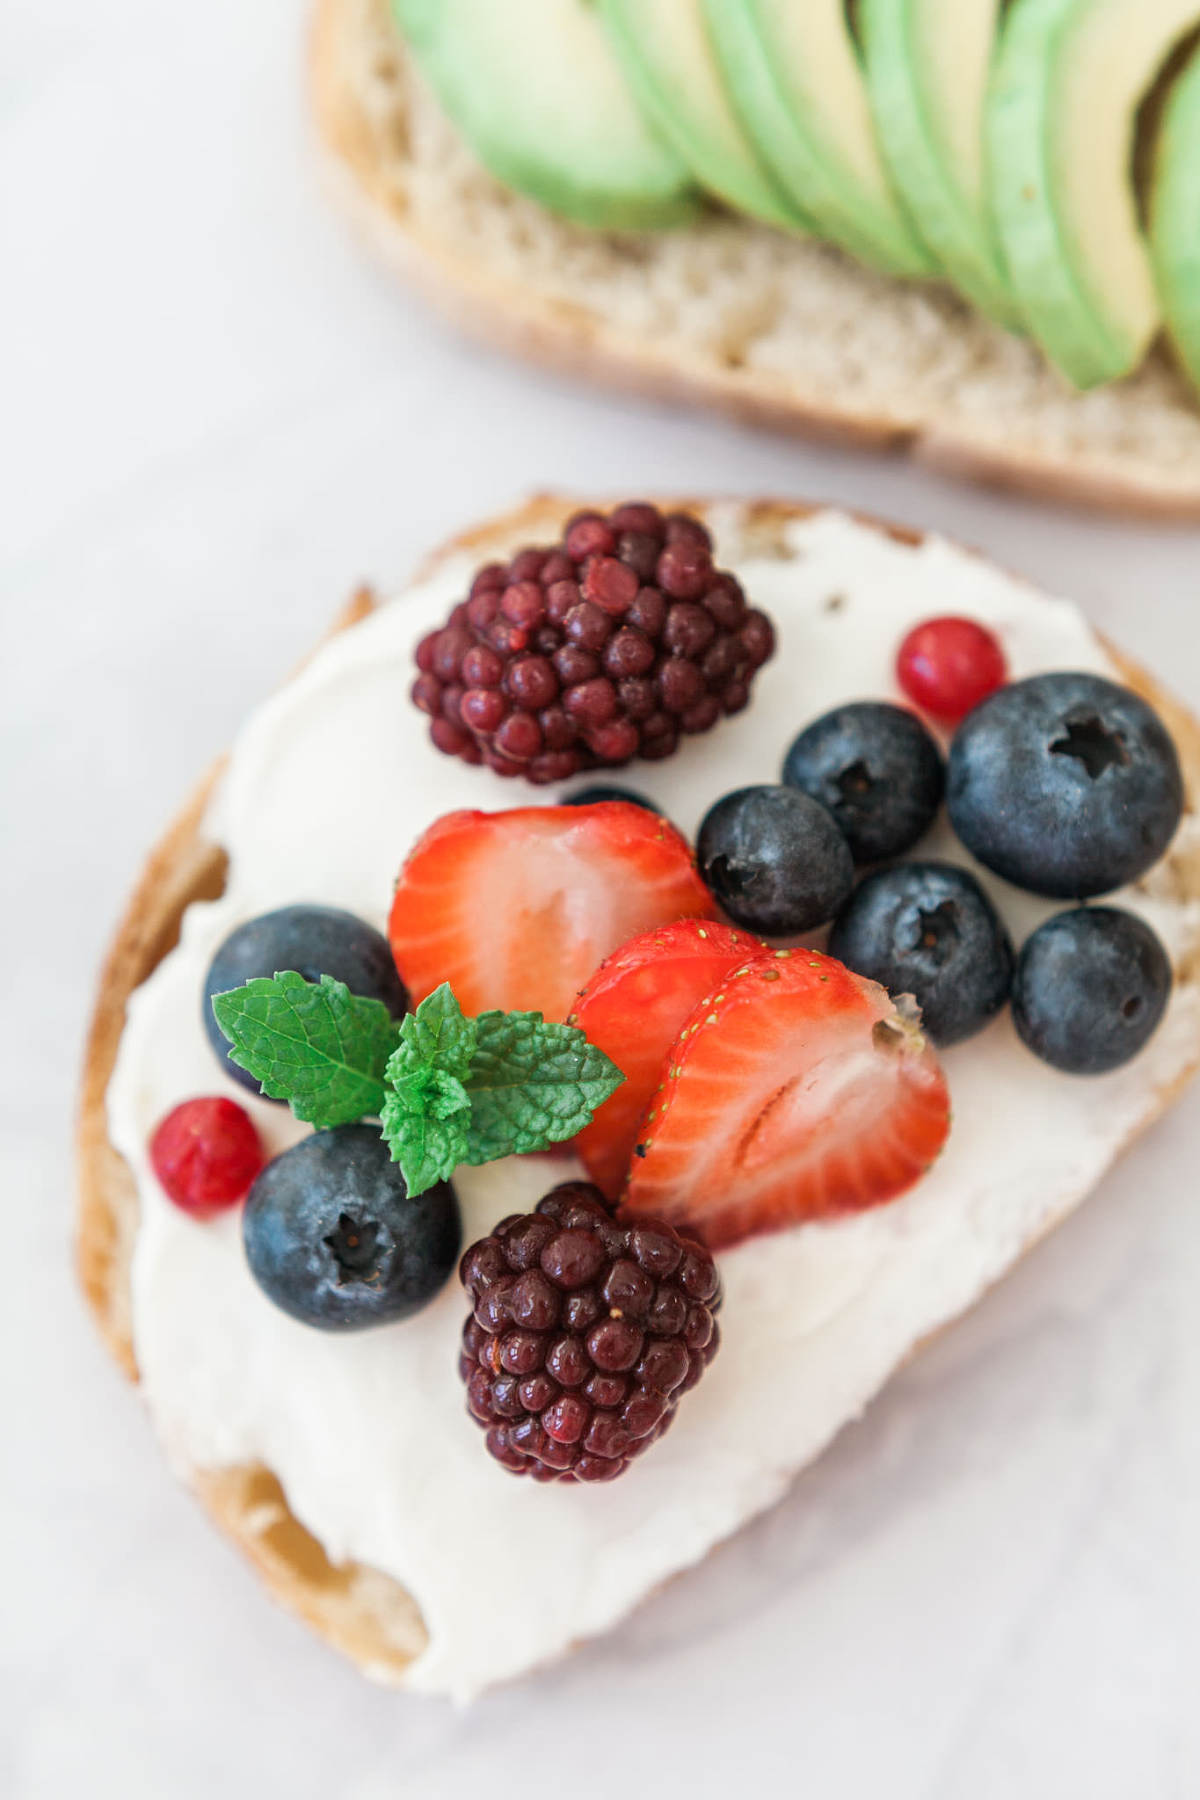 Food photography showing gourmet toasts - berries and cream cheese on toast